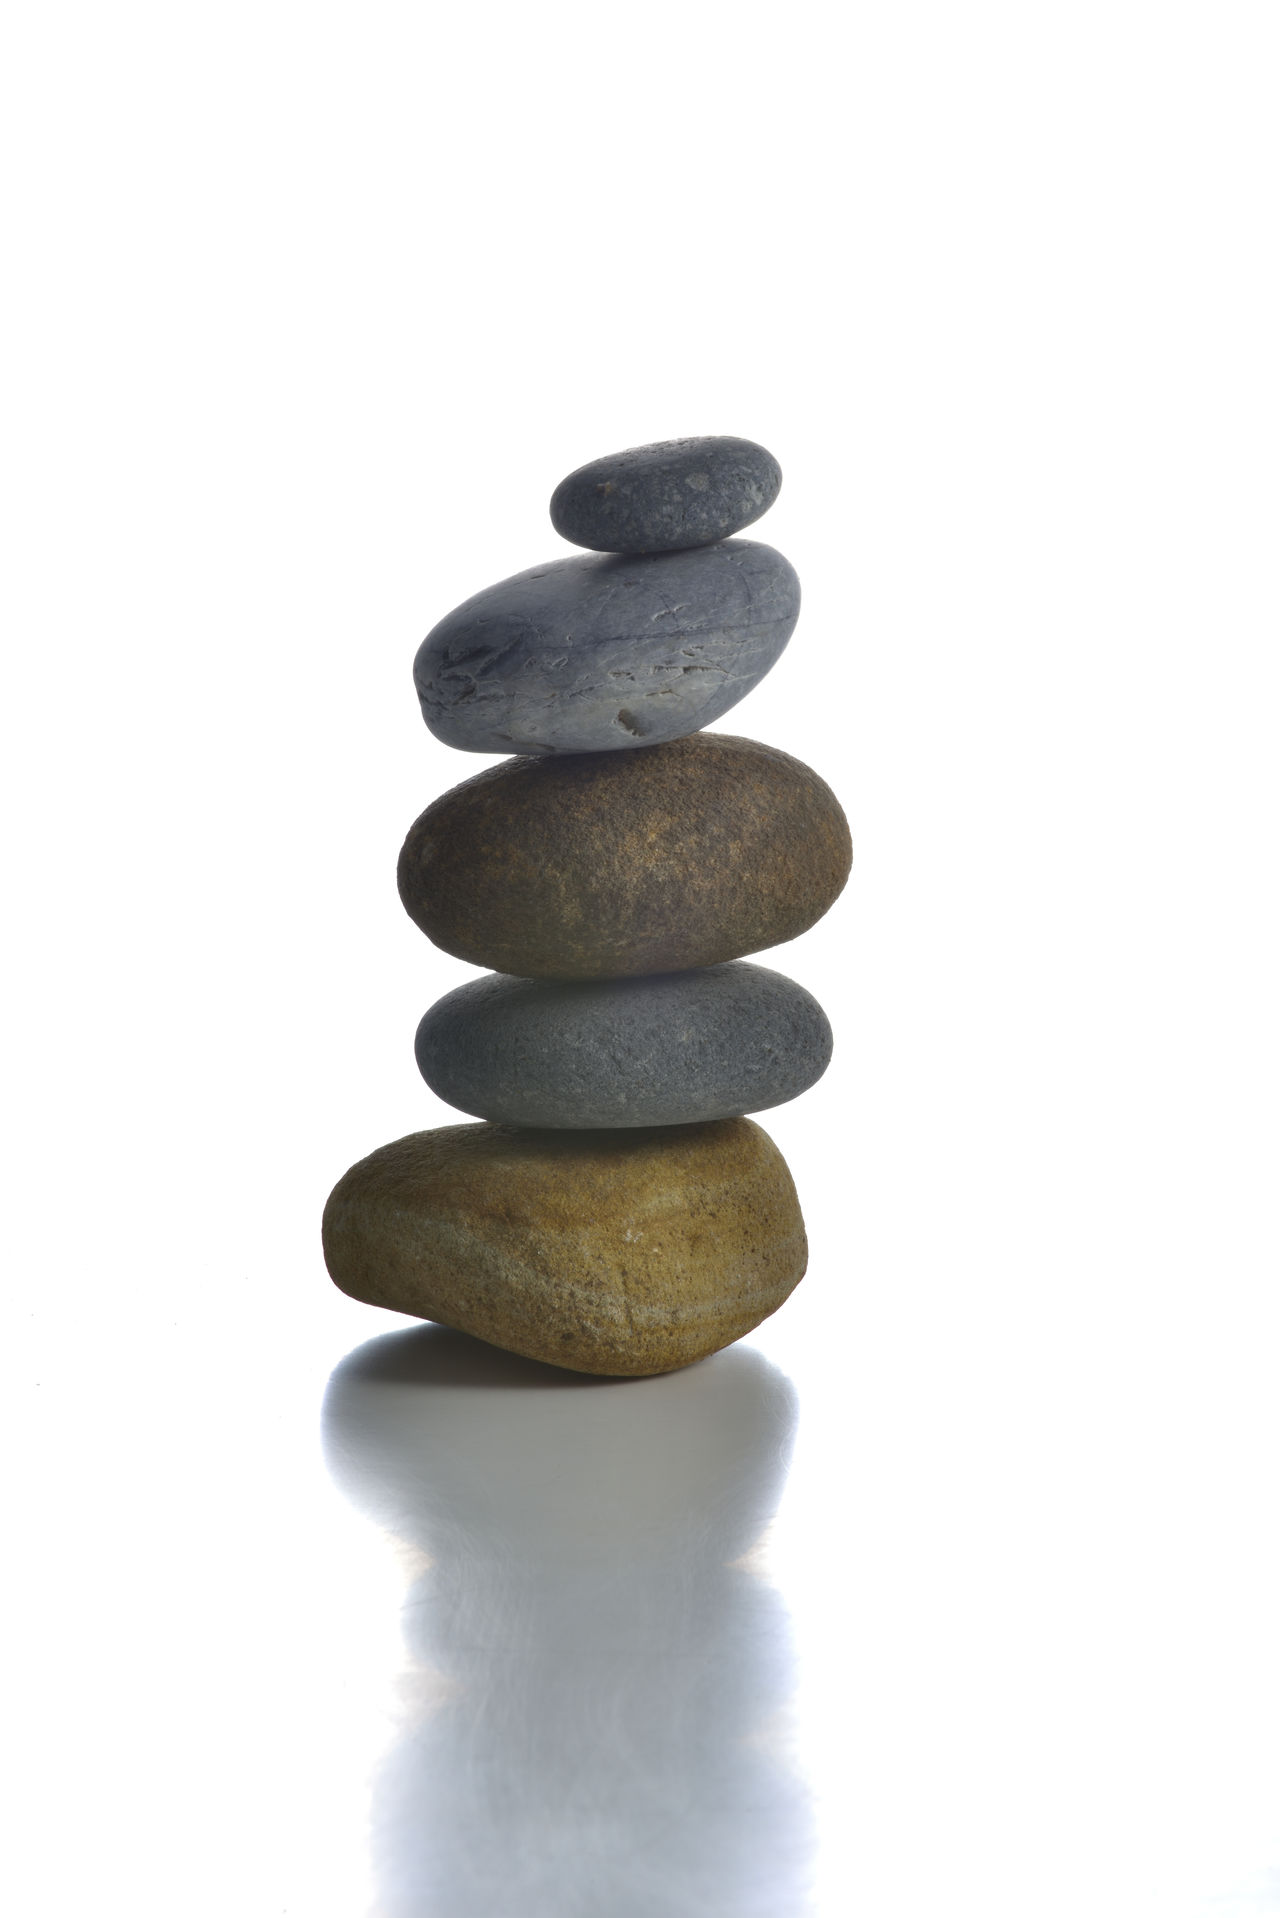 AIMS Beauty In Nature Effort Explore Force Freshness Help Nature No People Other Partner Pebble Reached Relationship Rock - Object Stack Stand Up Standard Pole Stone - Object Taiwan Team Tranquil Scene Up White Background Zen-like